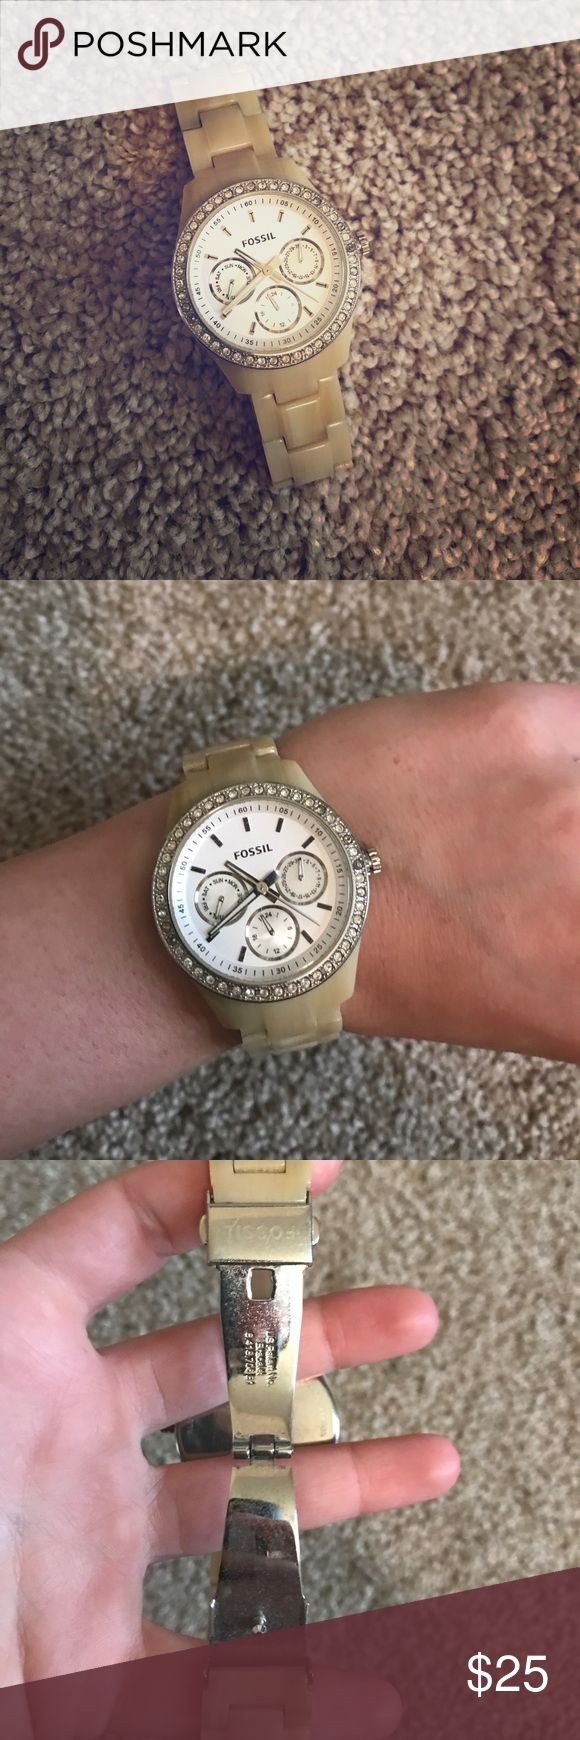 Fossil Cream Horn Watch Great used condition (needs a battery replacement). Hardware has some signs of wear as shown in photos, but no scratches on face or chain. Beautiful! Fossil Jewelry